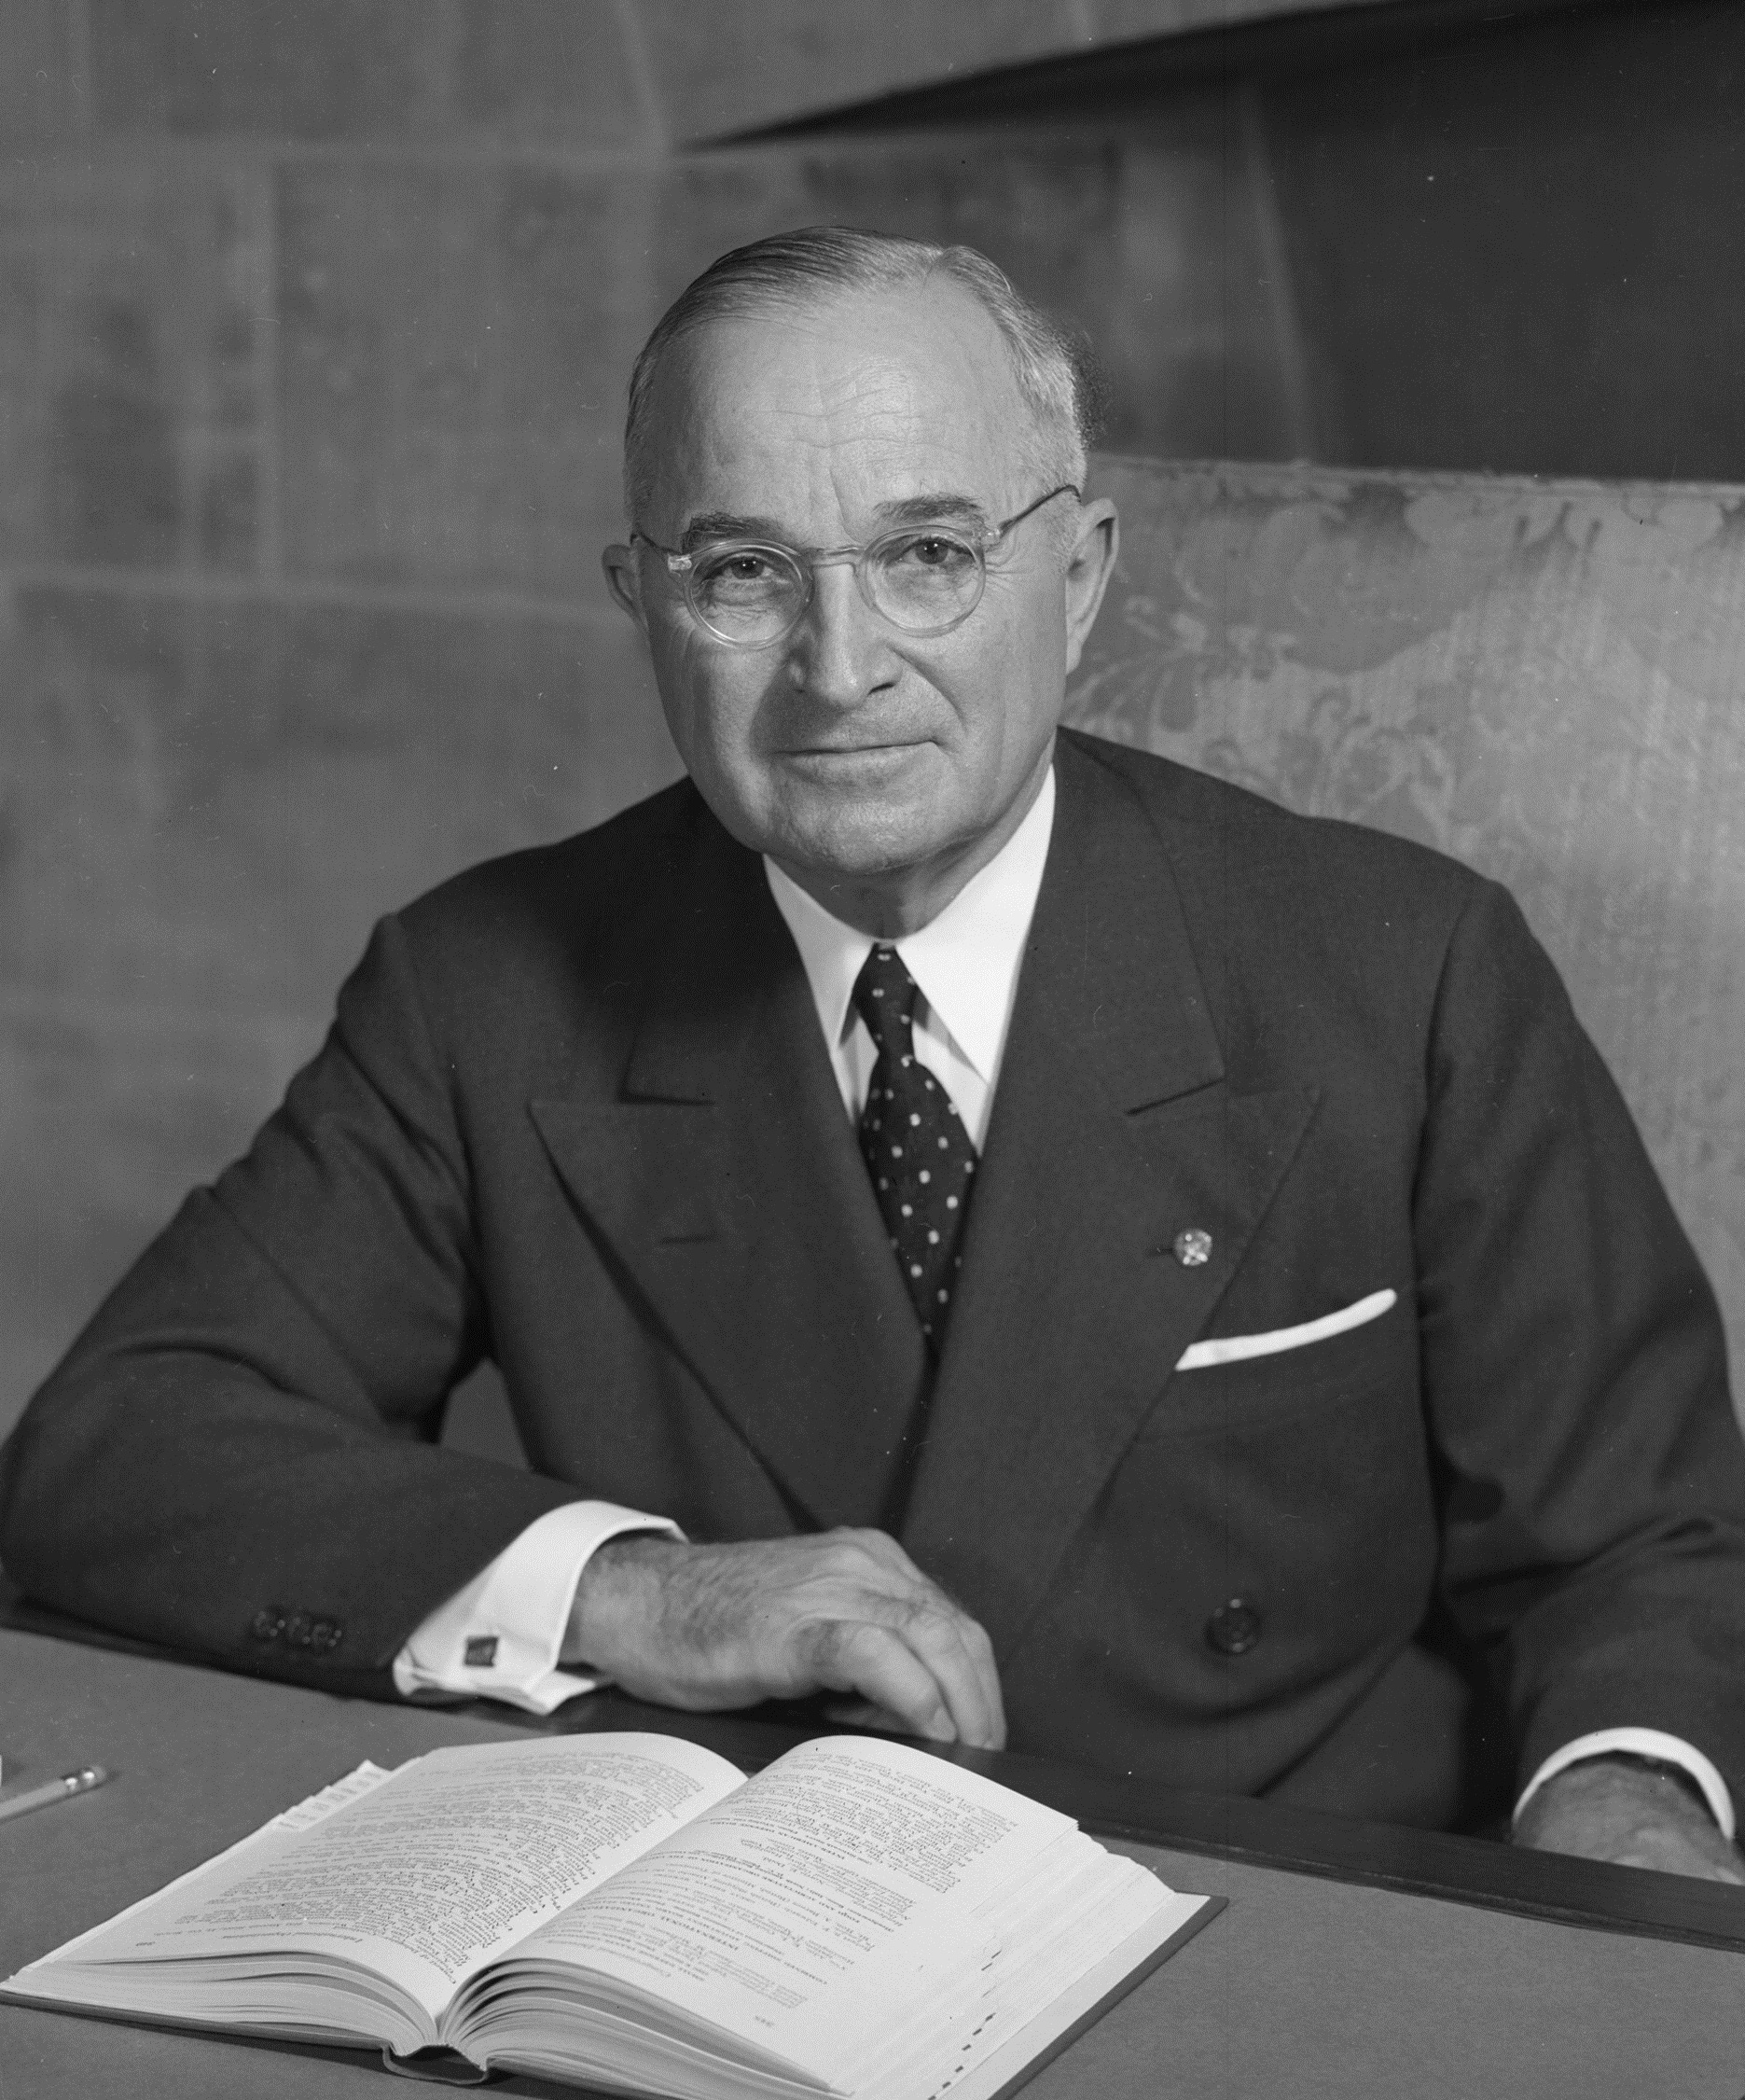 http://upload.wikimedia.org/wikipedia/commons/a/a6/Harry_S_Truman_-_NARA_-_530677_(2).jpg